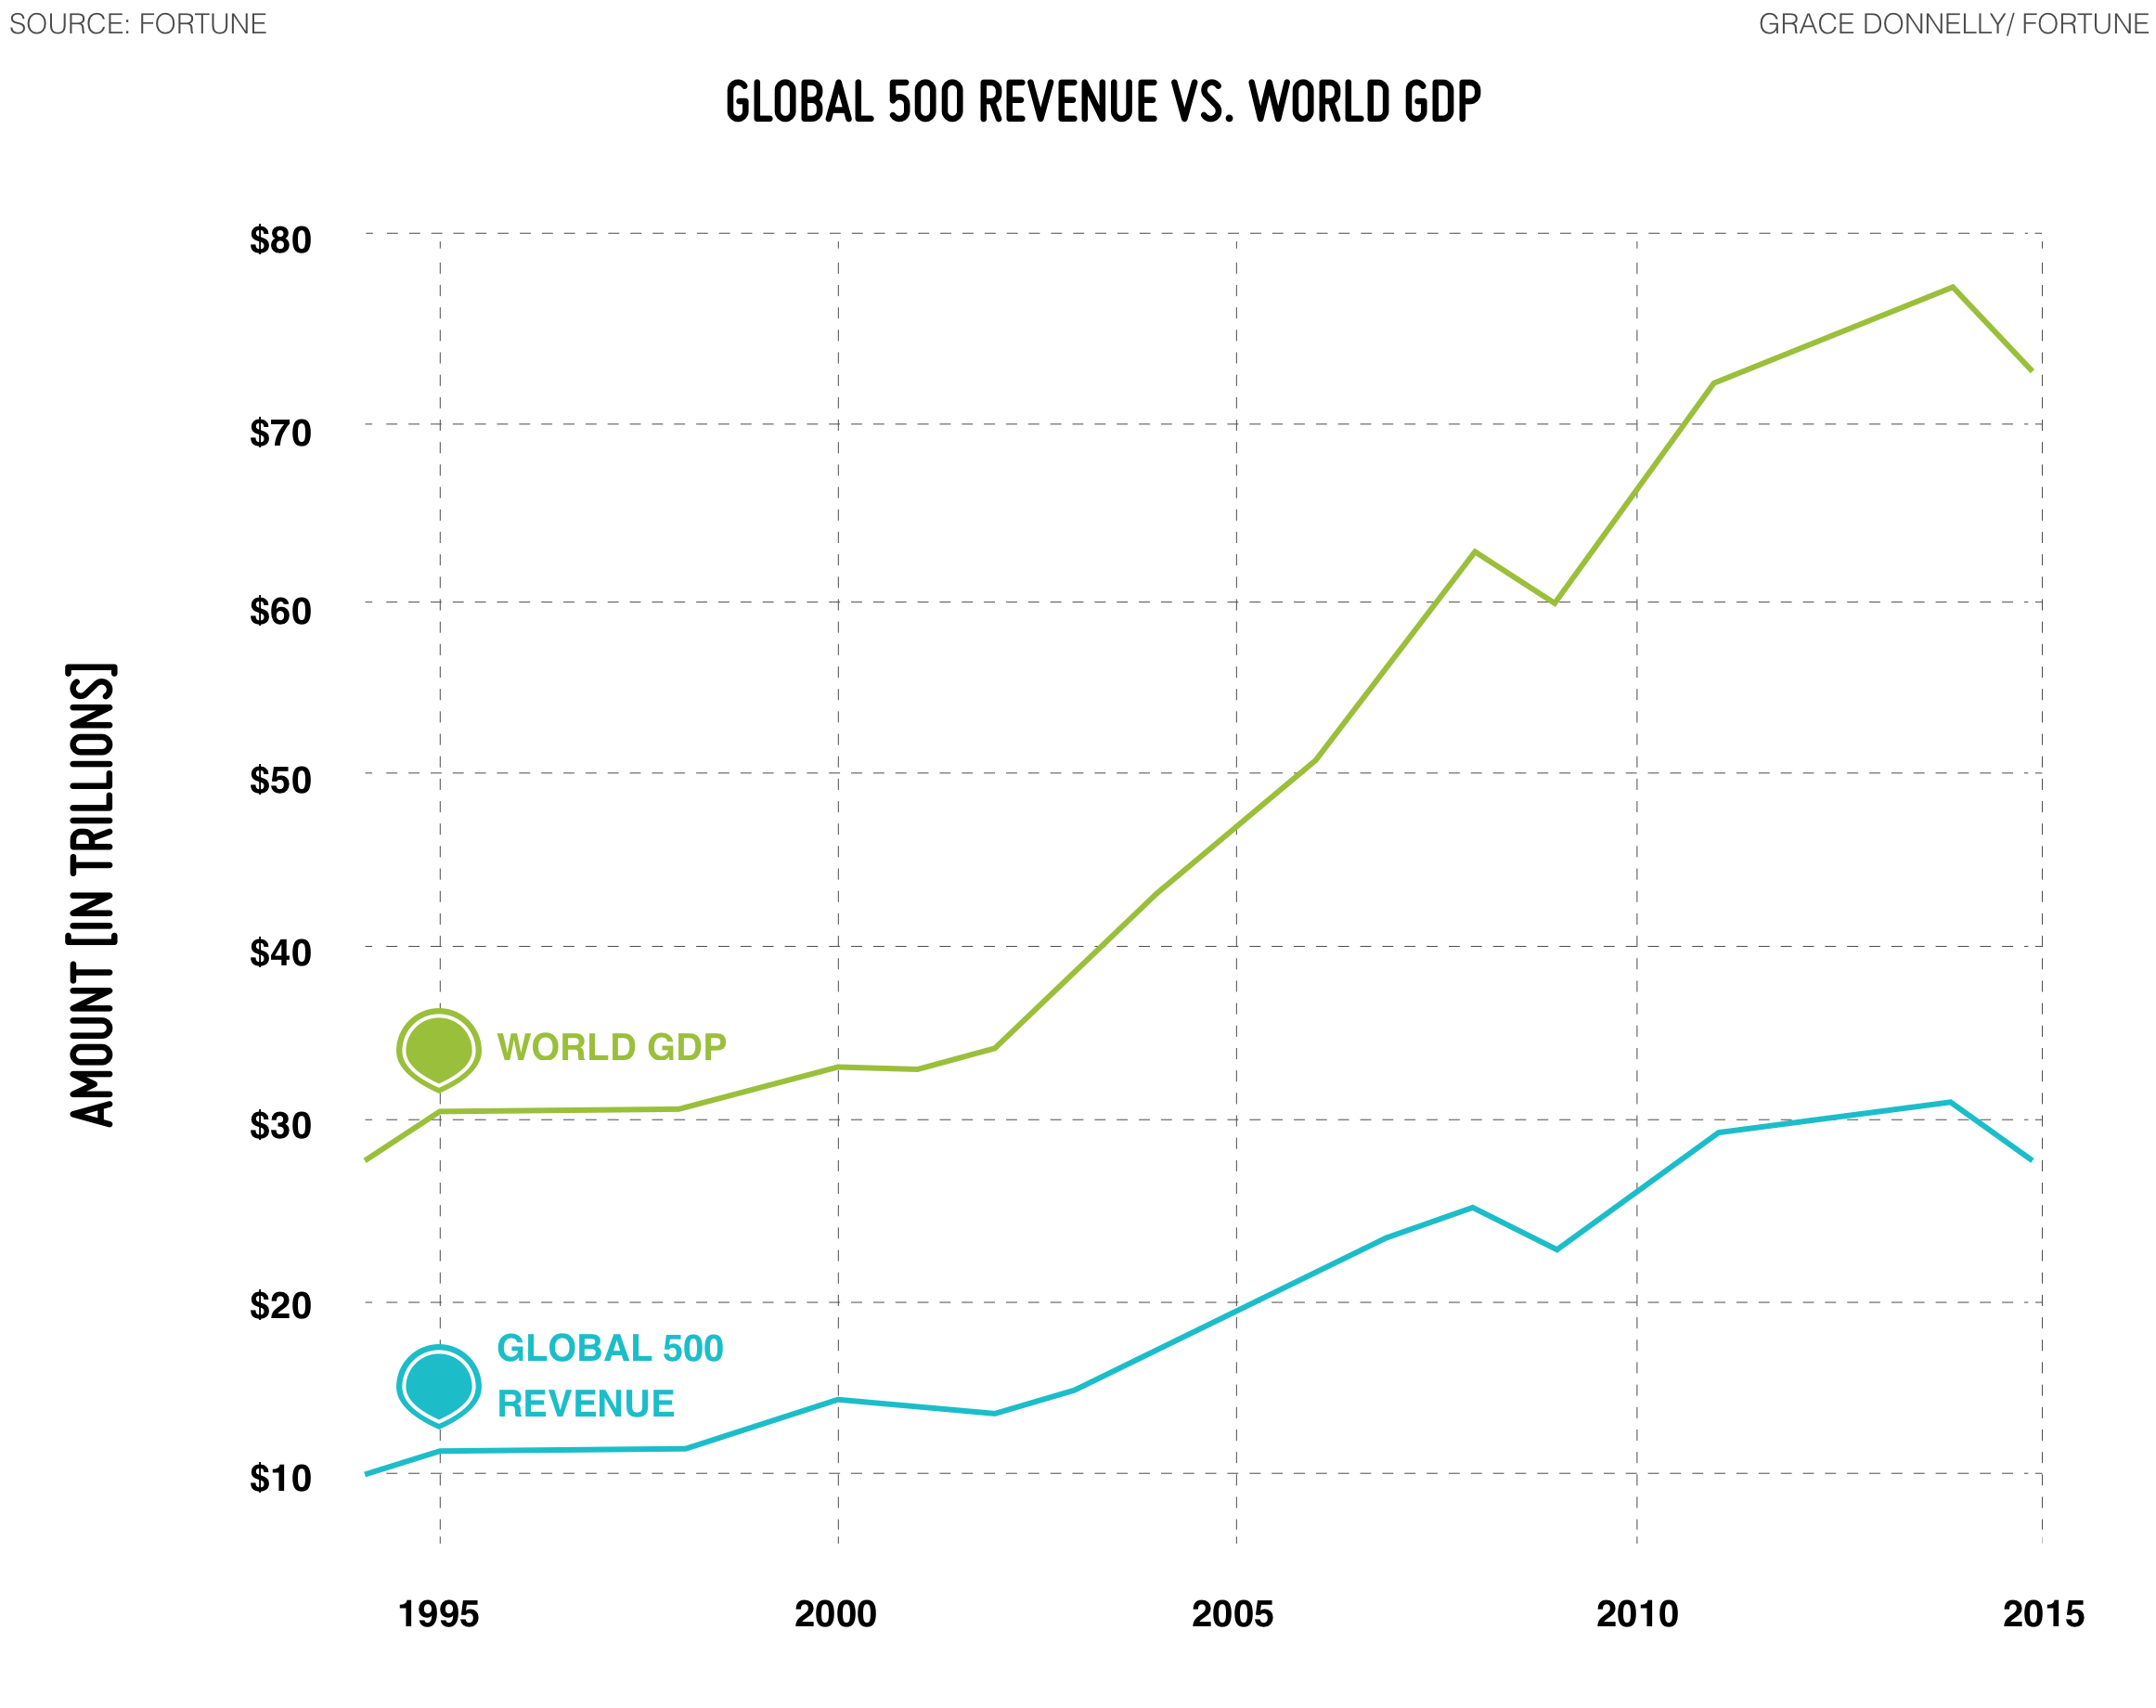 Global 500 revenue vs. World GDP Diagram